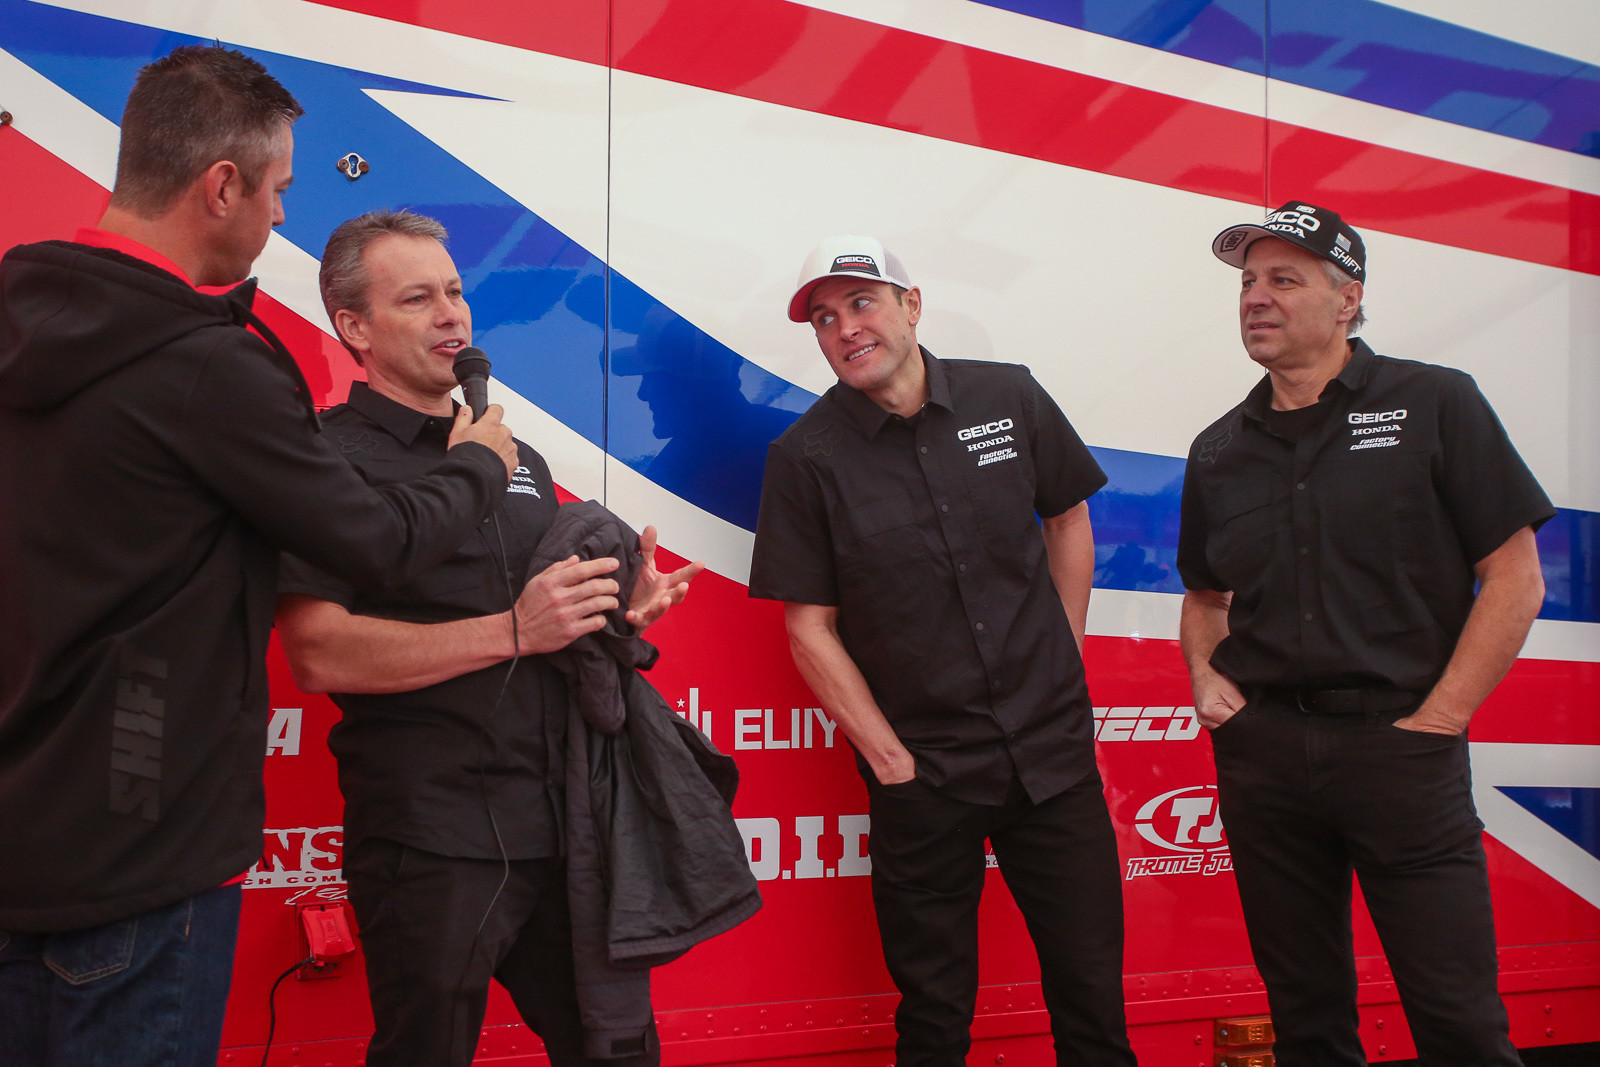 """Some of the biggest news on the GEICO Honda front was the addition of Ryan Dungey to the ownership group of the team. He was introduced by Rick """"Ziggy"""" Zielfelder and joined up front by Jeff Majkrzak (right), who also has an ownership stake in the team."""